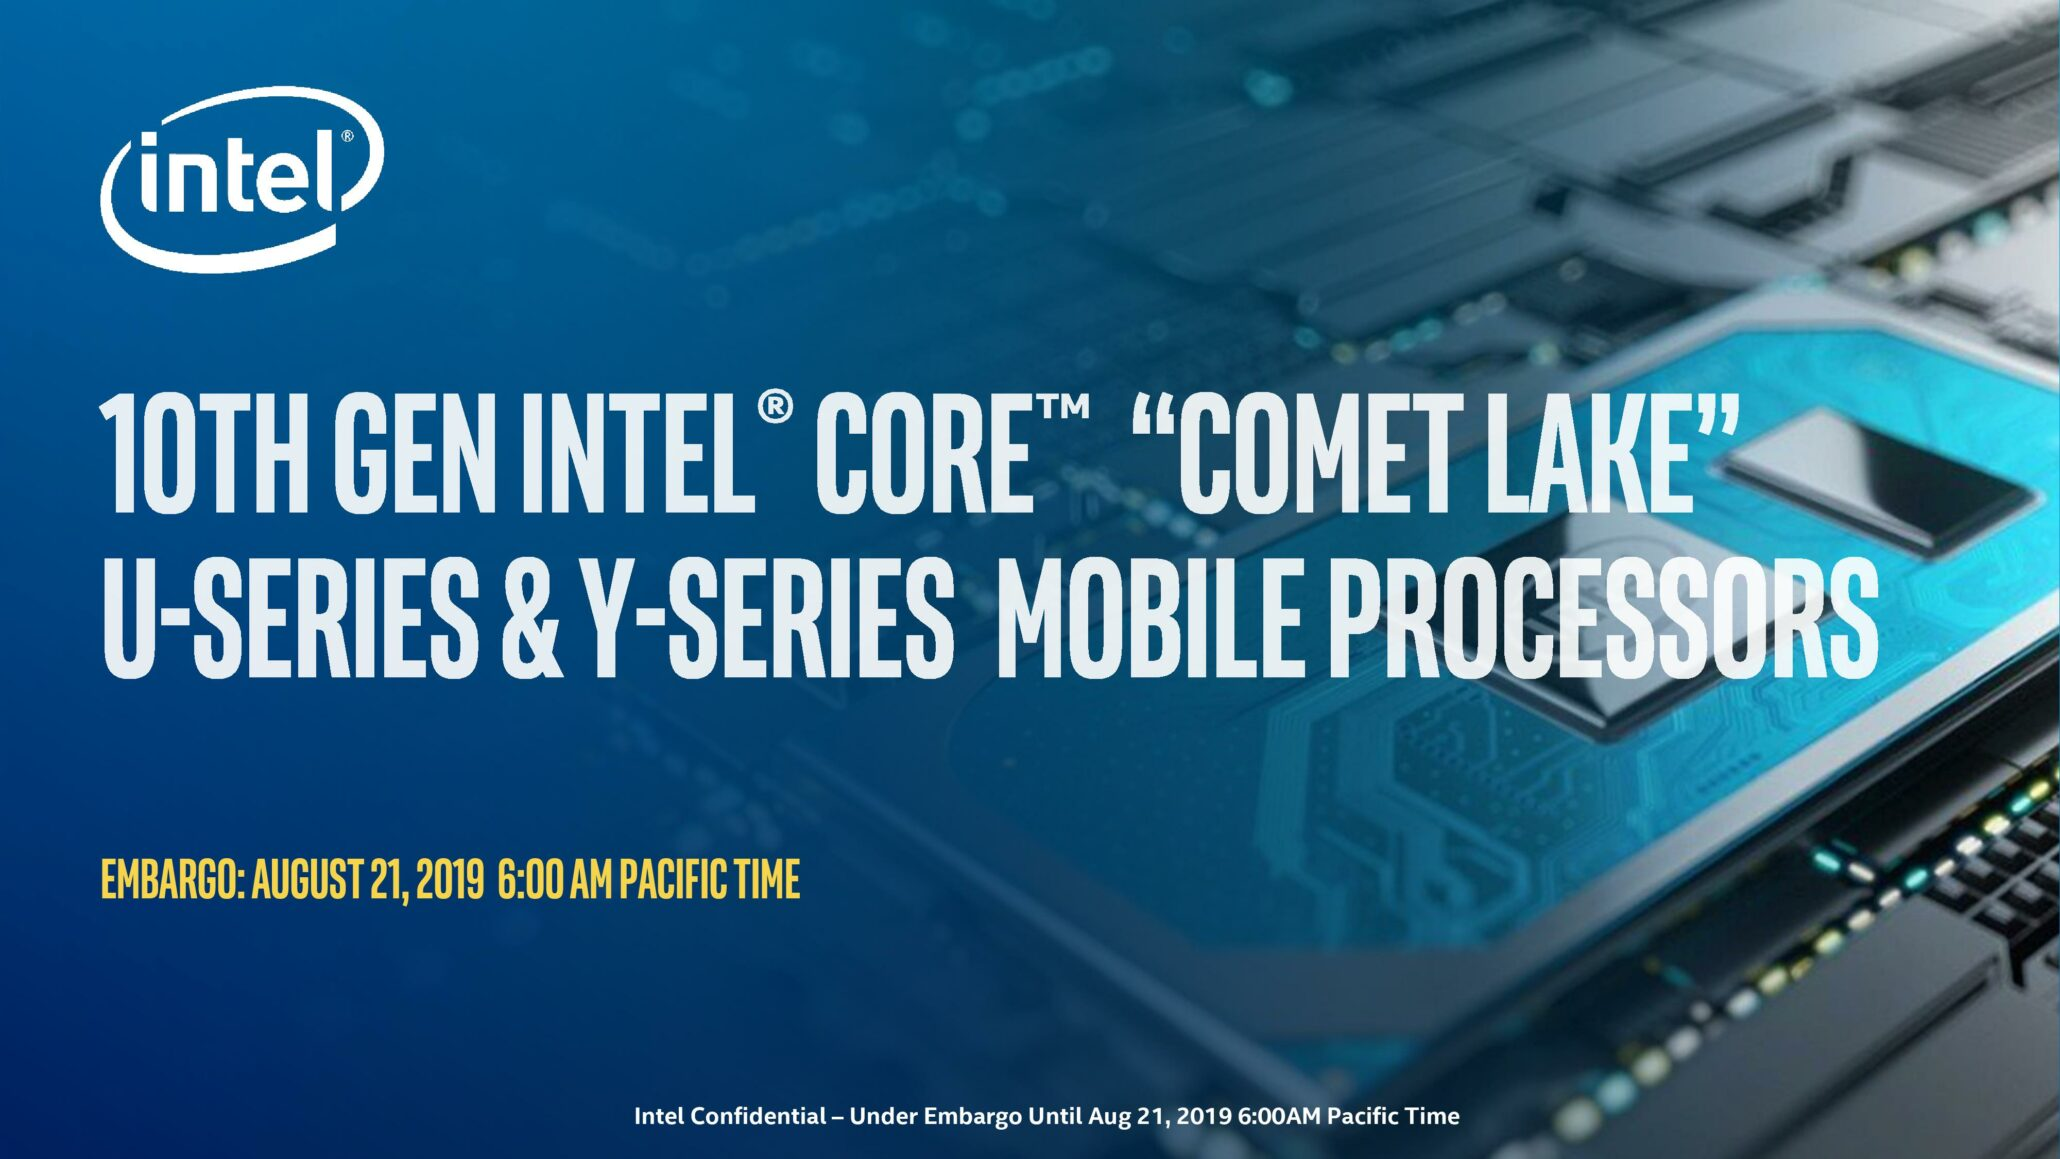 Intel Launches 10th Generation 'Comet Lake' Mobility